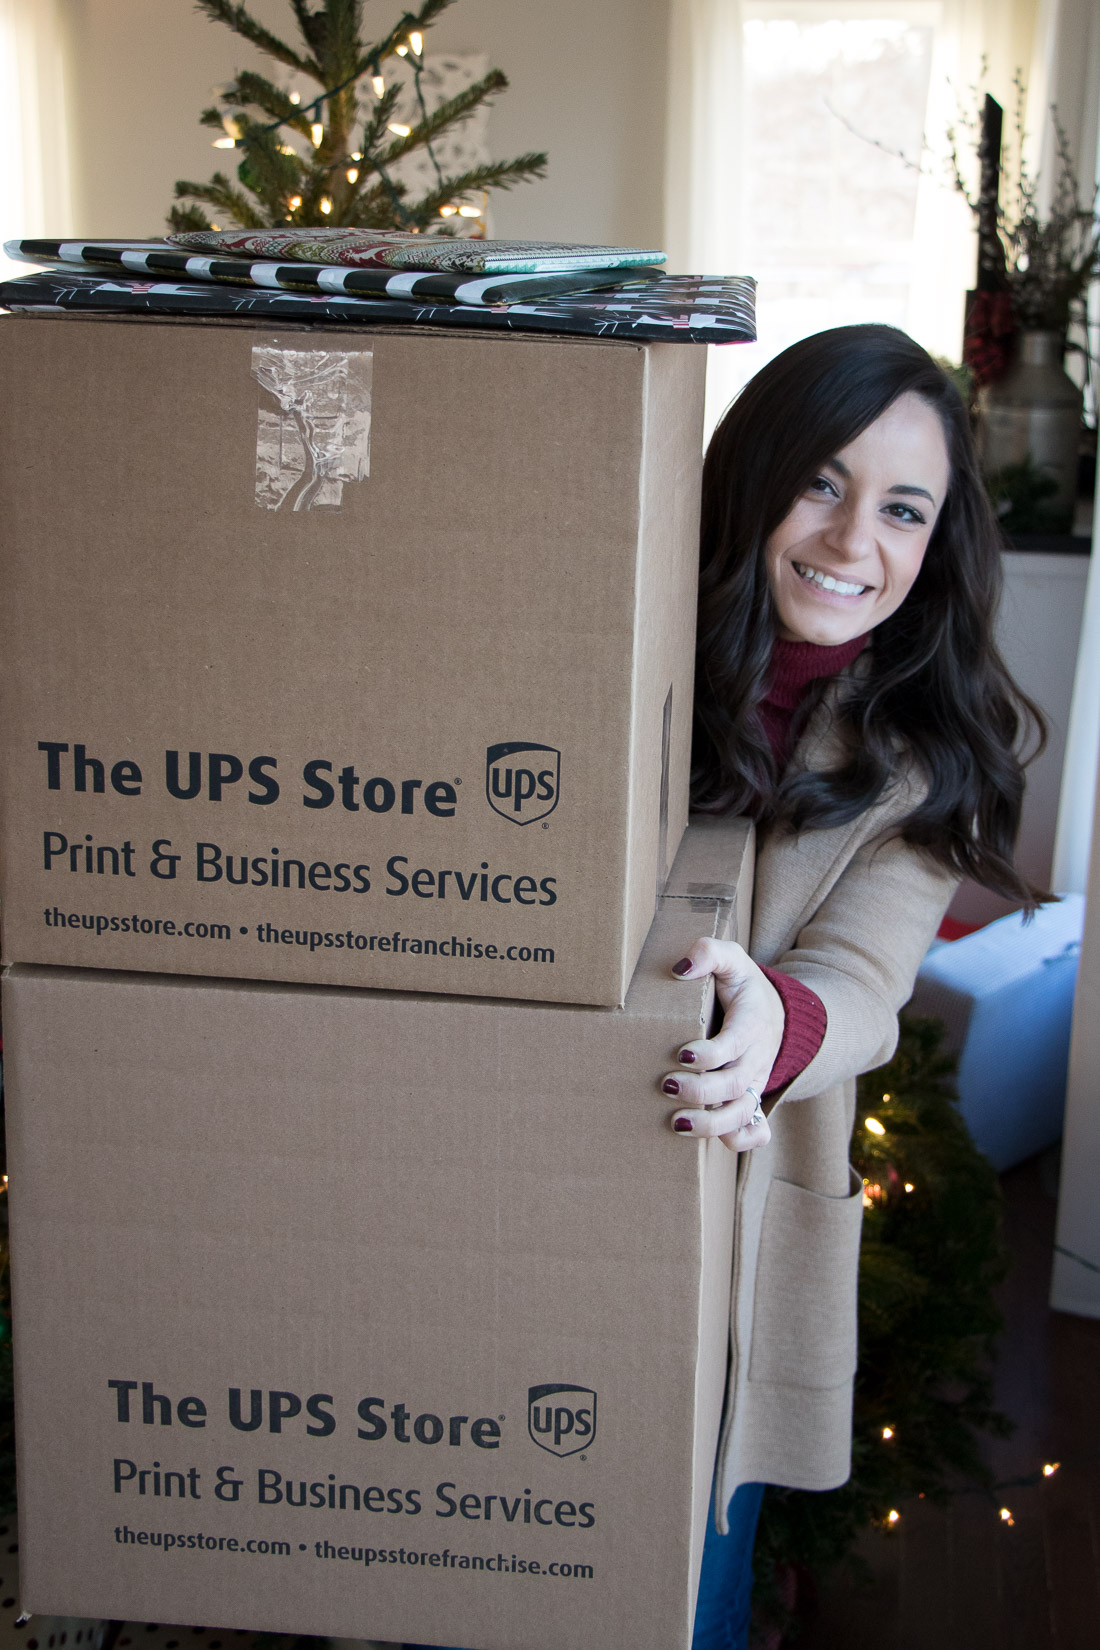 Ship Your Packaged Safely and Quickly With The UPS Store